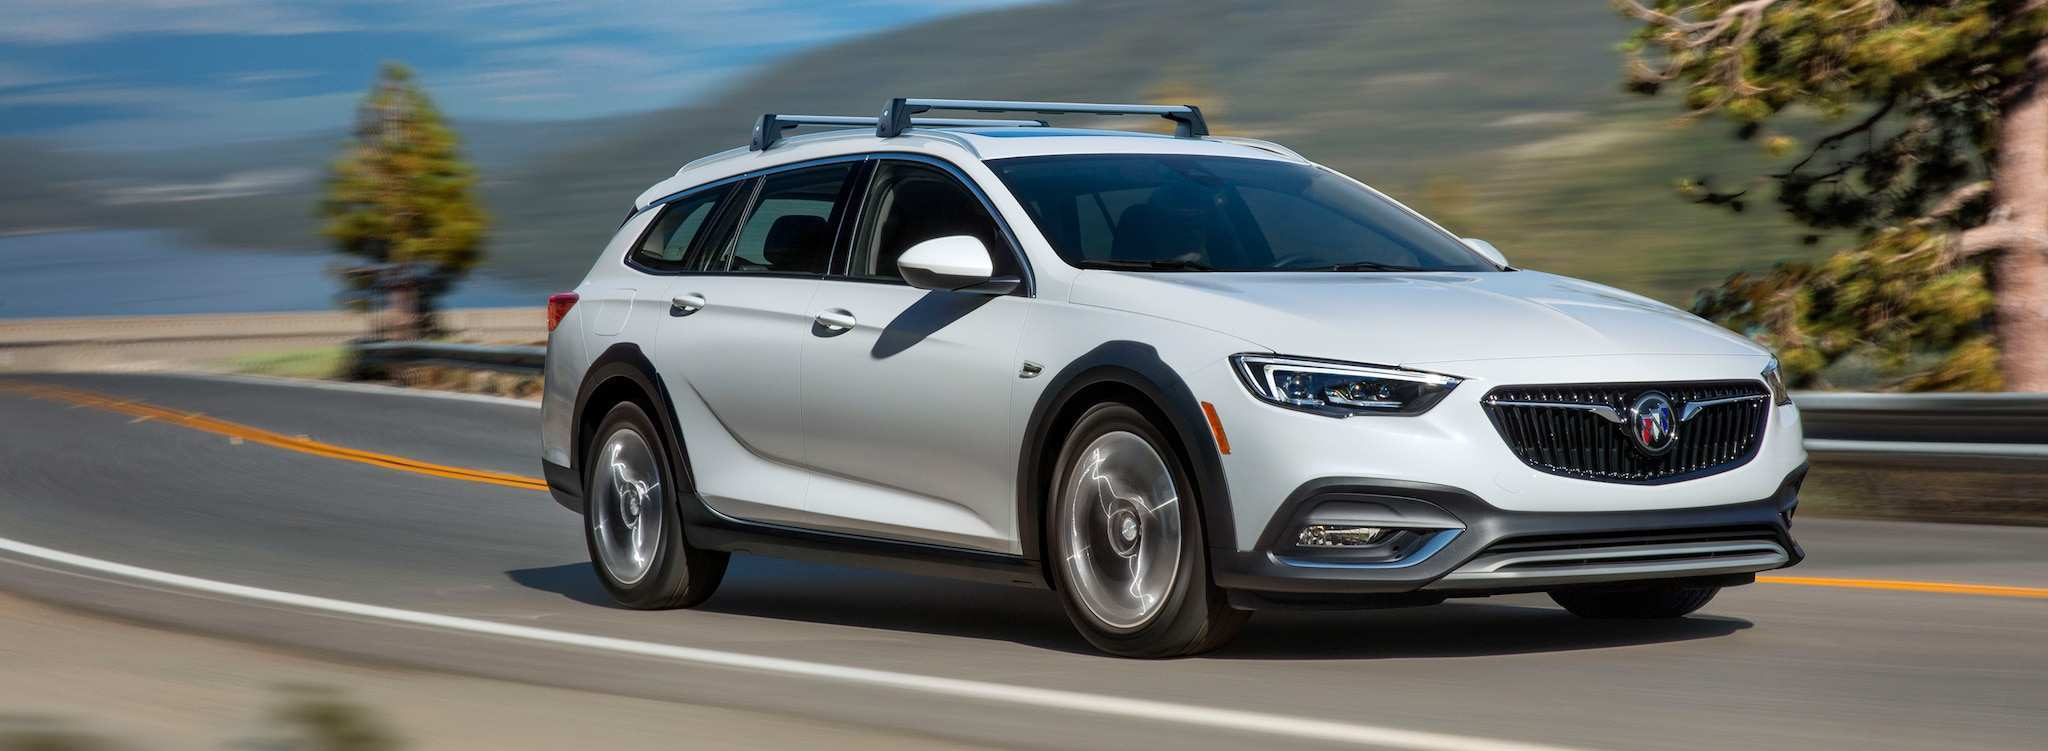 71 All New 2019 Buick Lineup Rumors